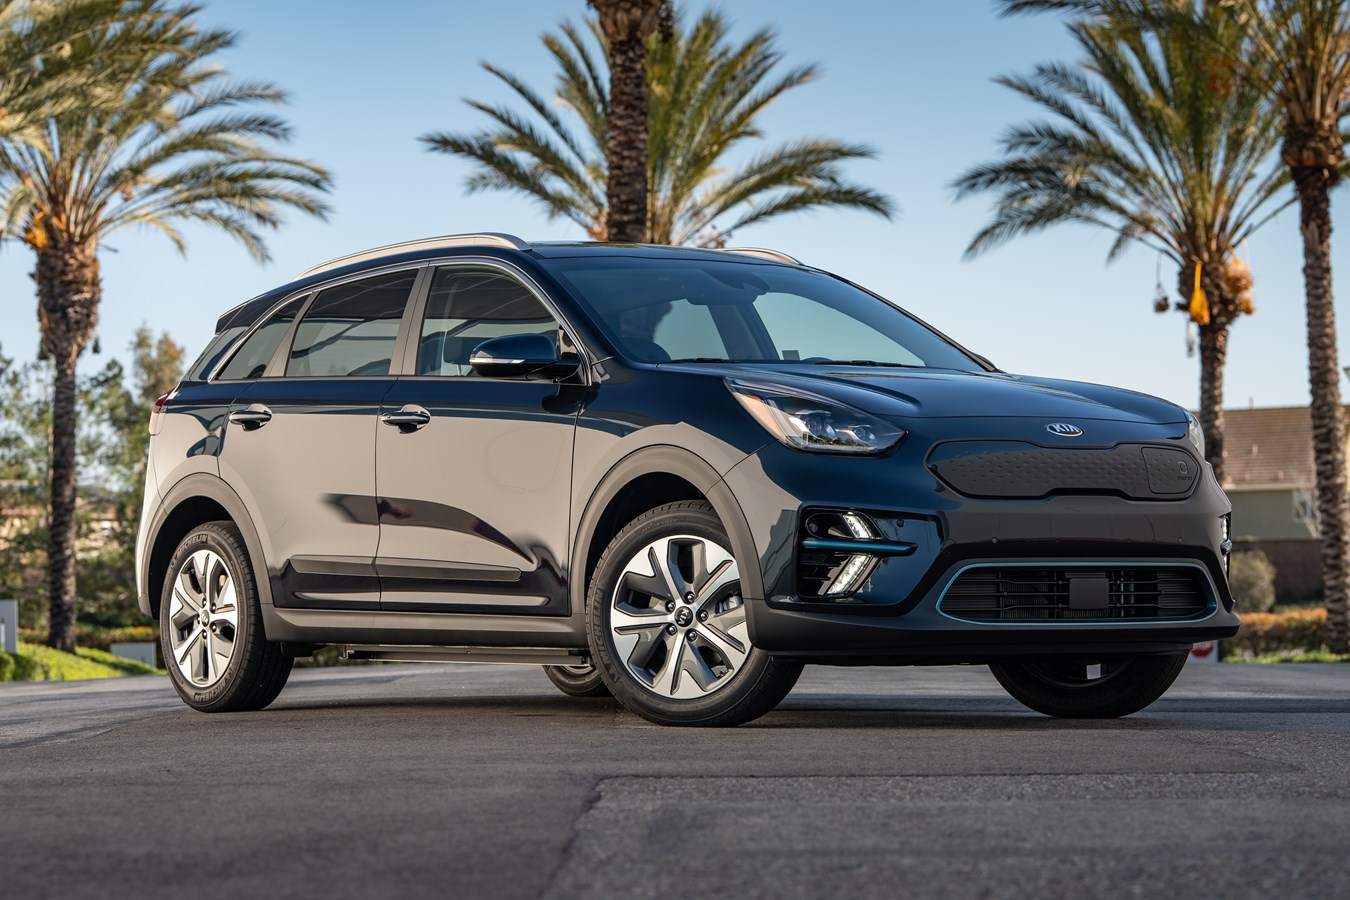 New And Used Kia Niro Ev Prices Photos Reviews Specs The Car Connection